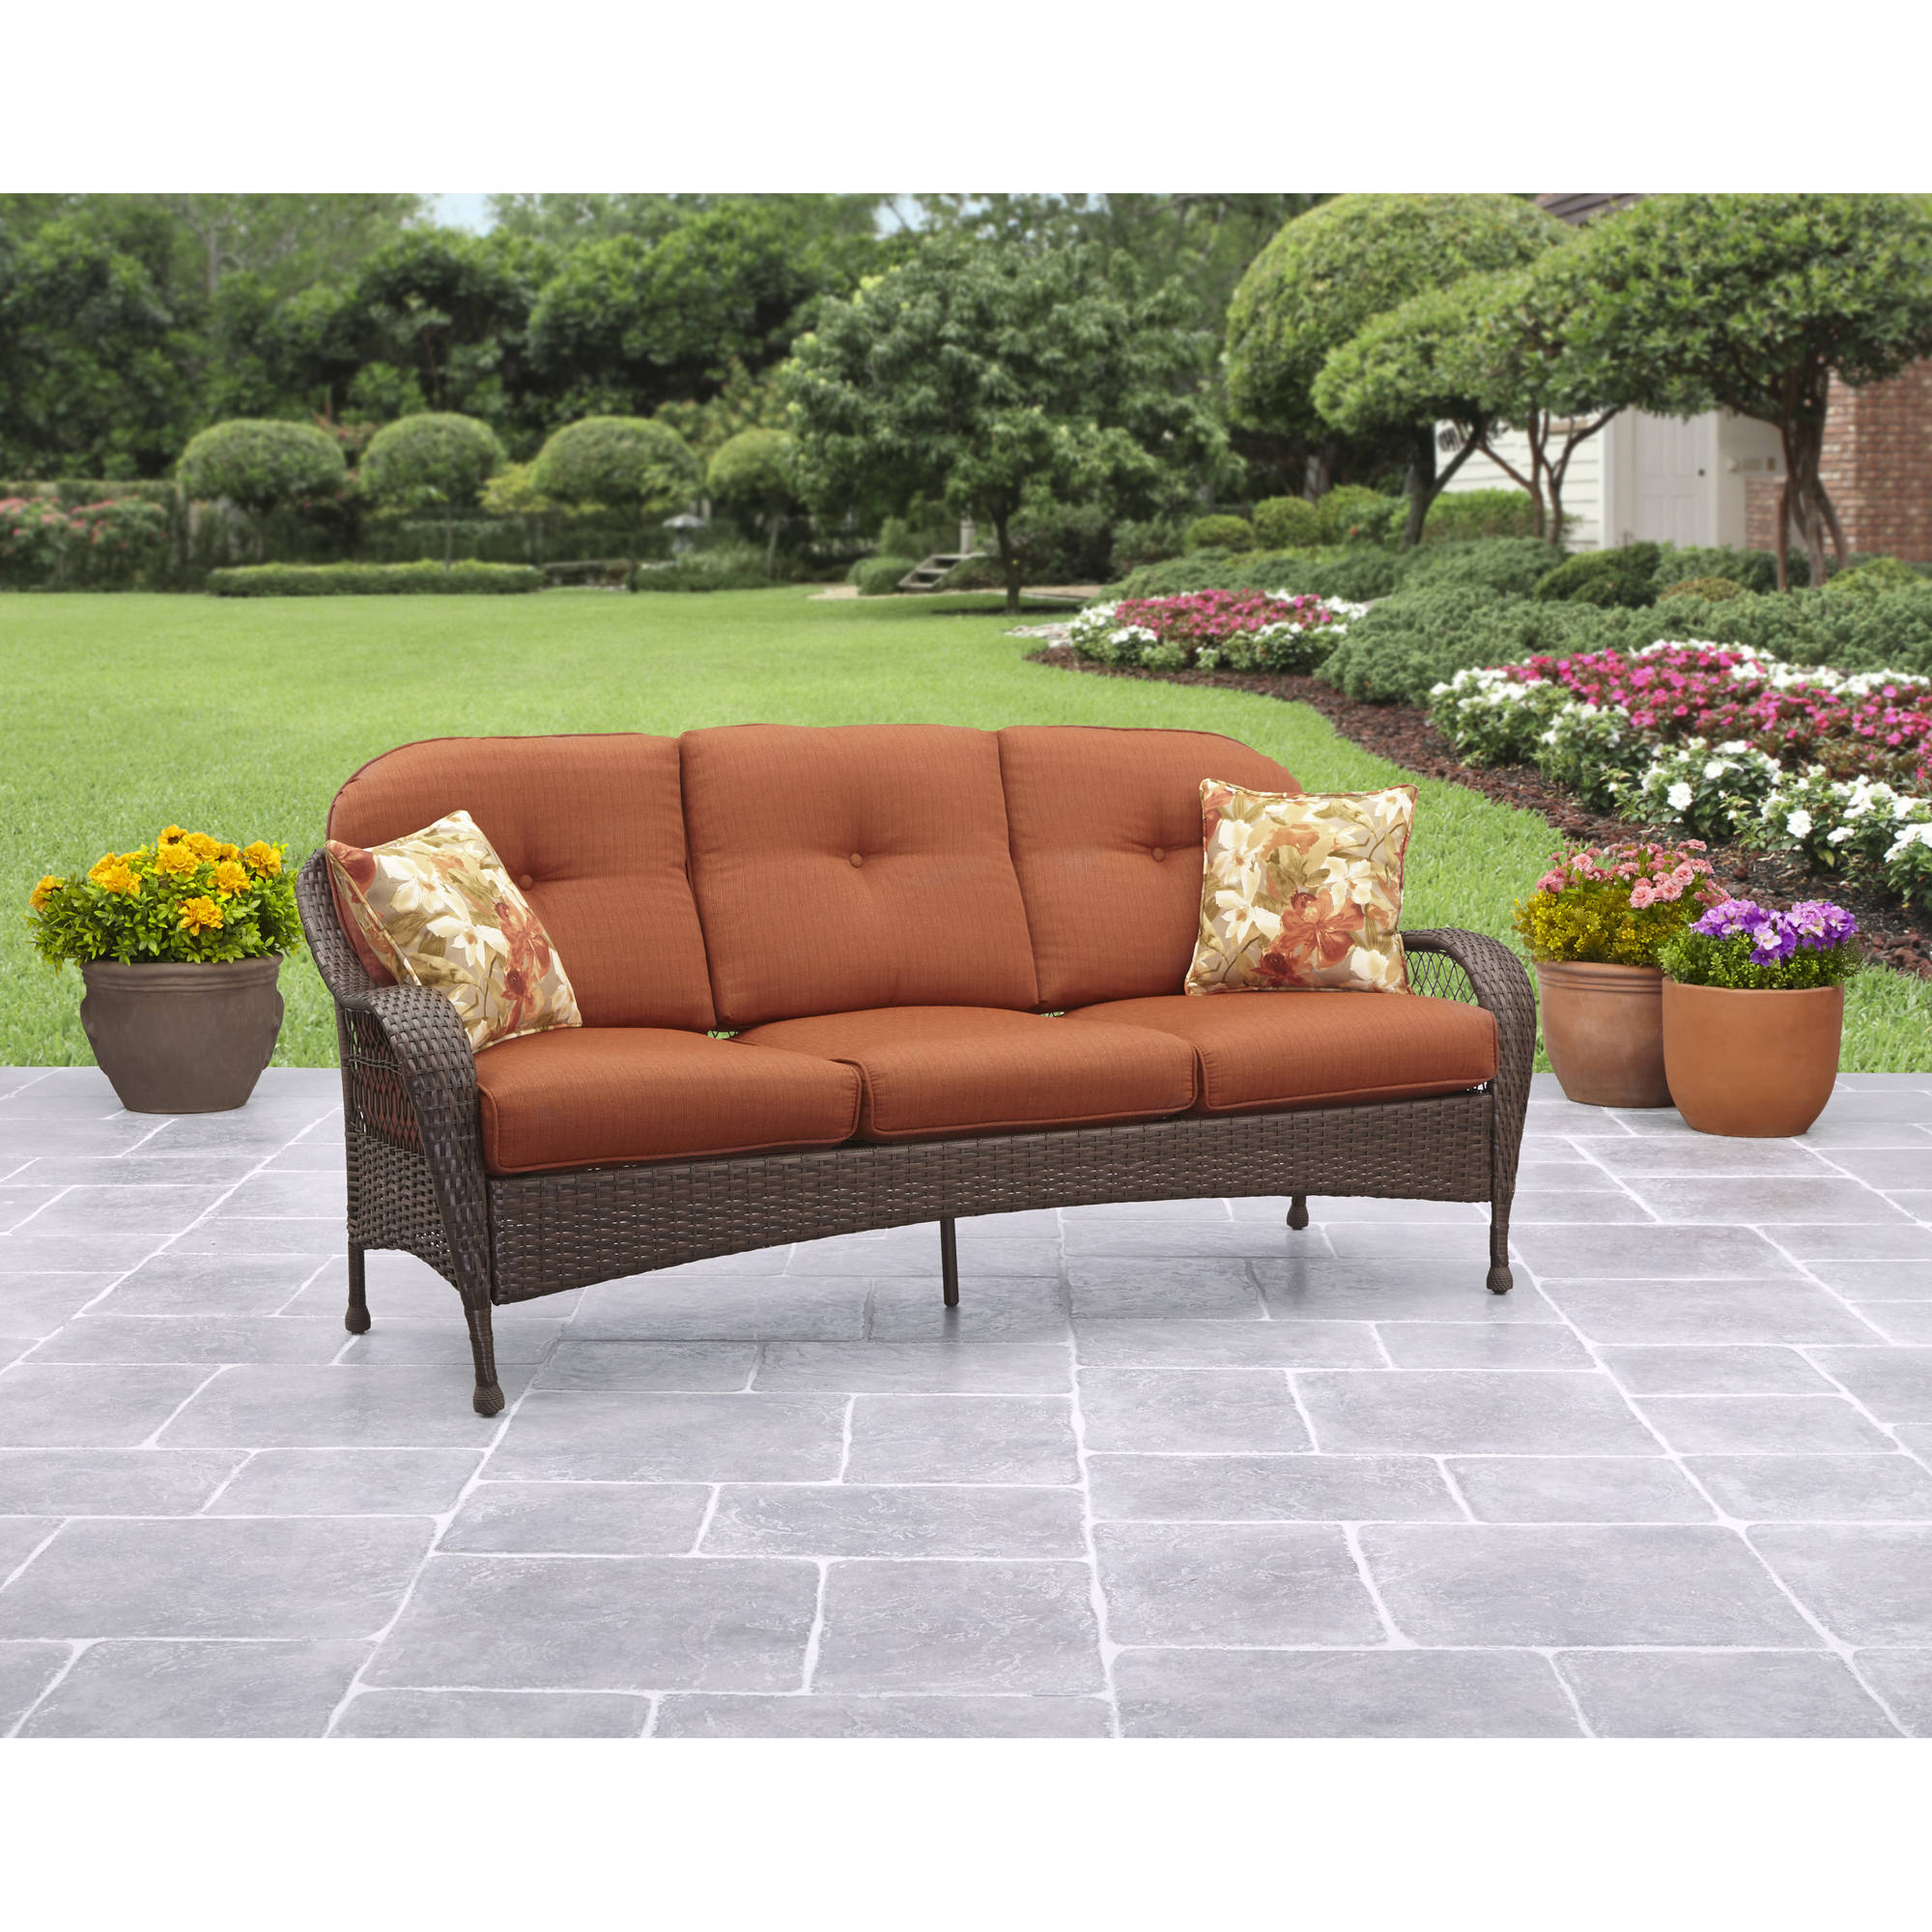 Better Homes and Gardens Azalea Ridge Outdoor Sofa, Seats 3 ...